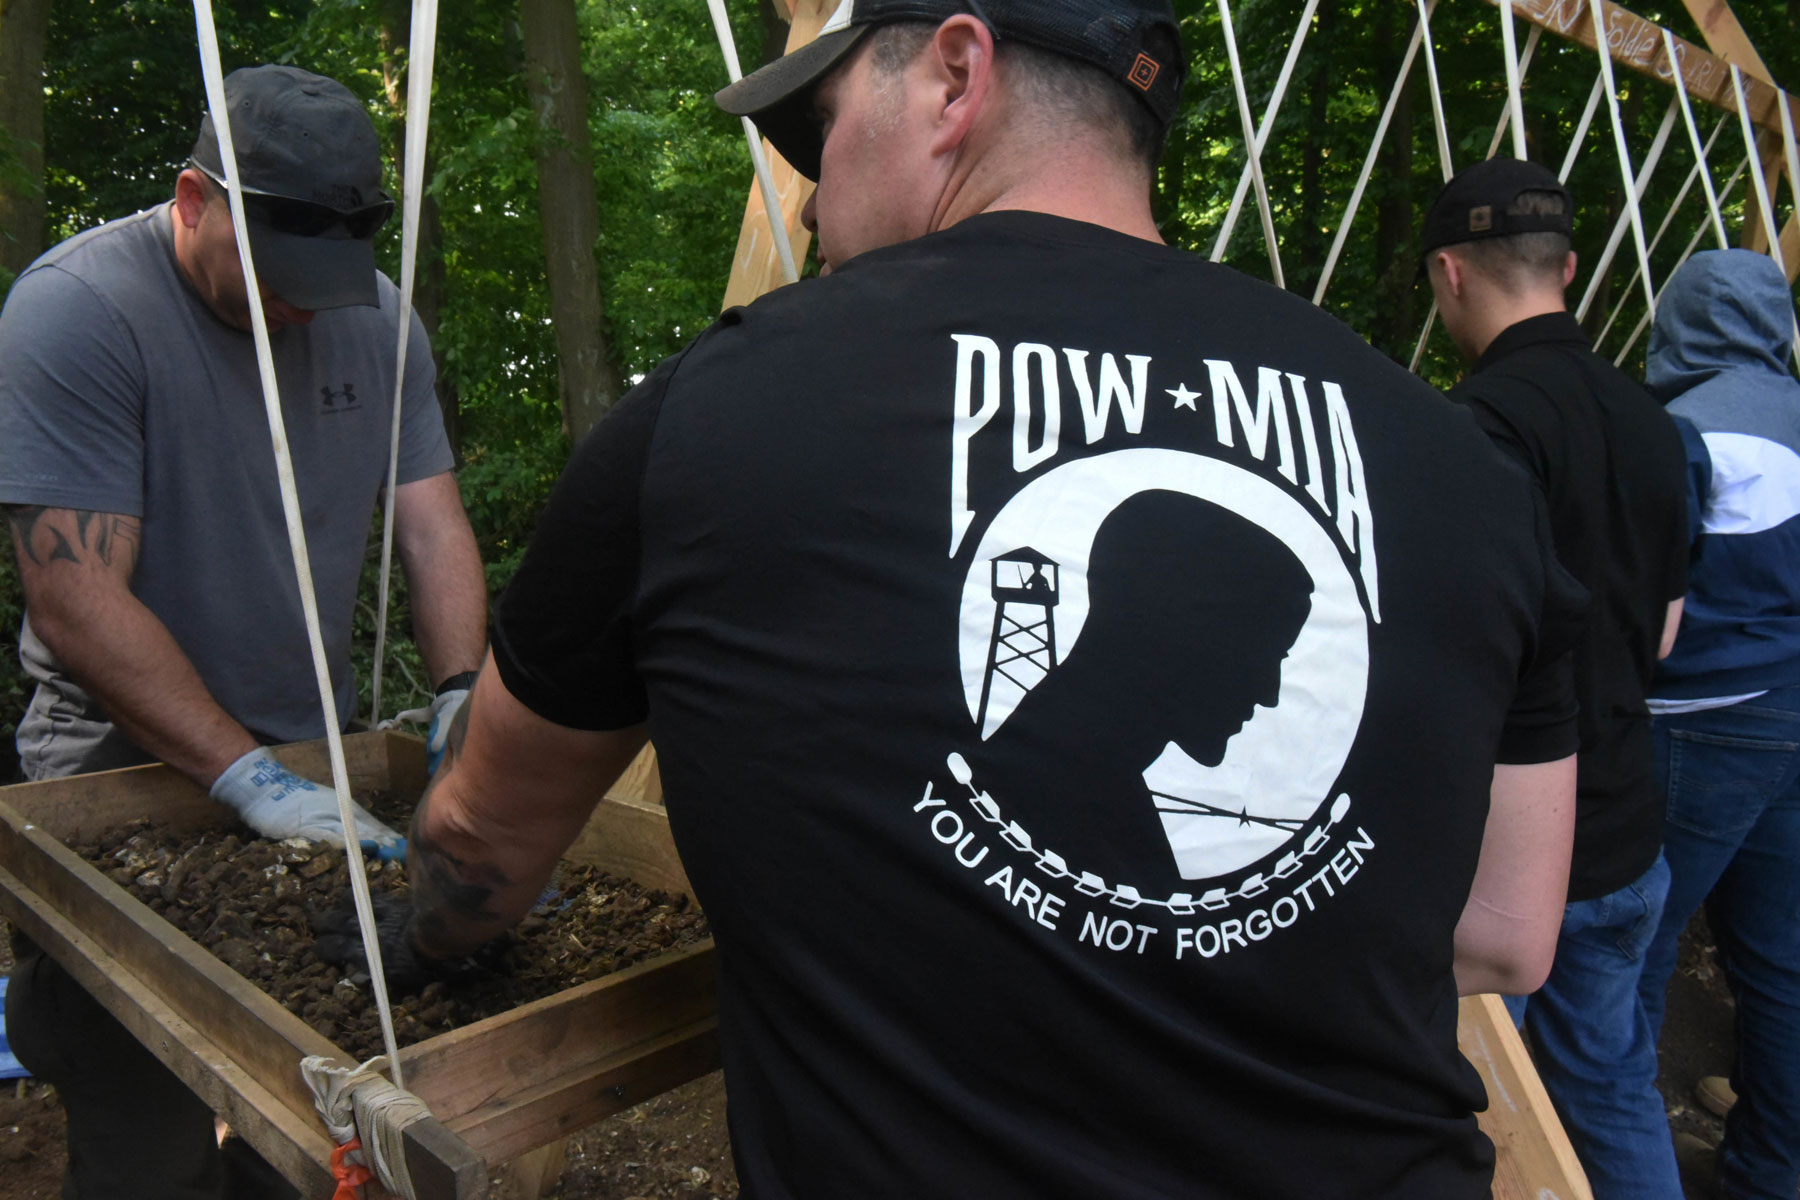 U.S. Army Sgt. 1st Class Nathan Fair, with the Defense POW/MIA Accounting Agency (DPAA) dry screens soil in search of remains in Boussicourt, France, May 22, 2018. (U.S. Army photo by Staff Sgt. Richard DeWitt)